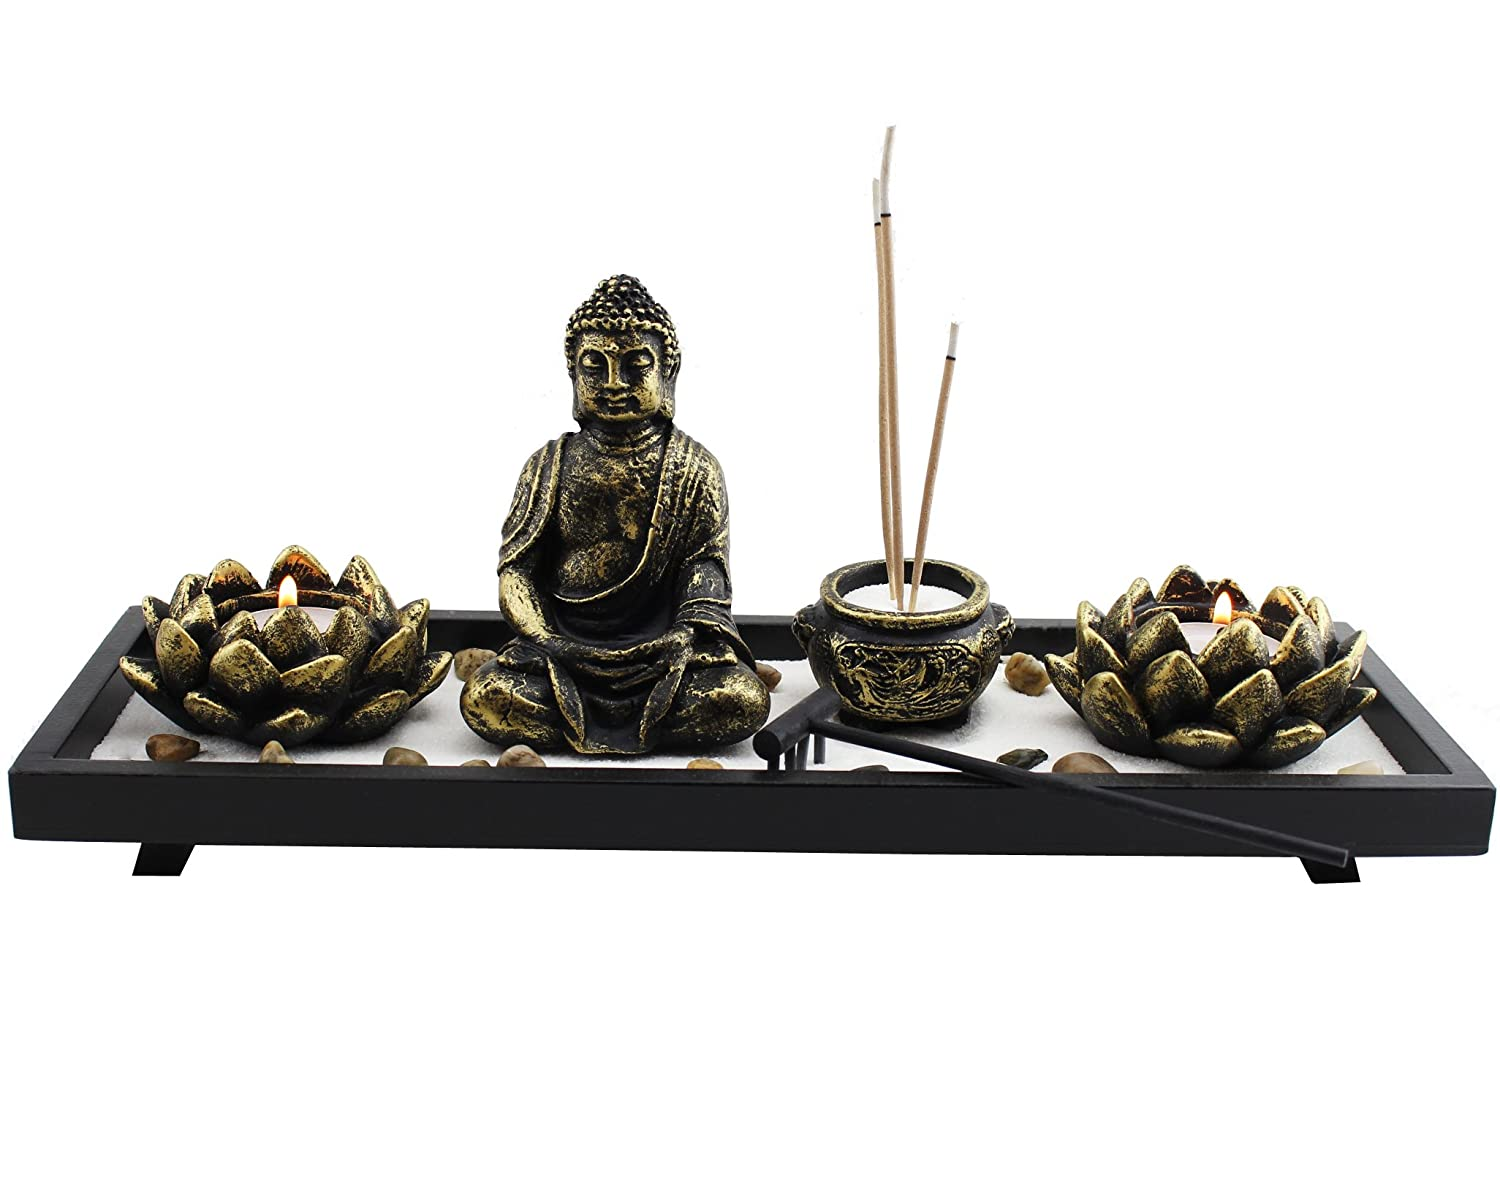 Feng Shui Tabletop Zen Garden Buddha Rock Rake Sand Candle Incense Burner Home Decor Gift (KT00034) ~ We Pay Your Sales Tax